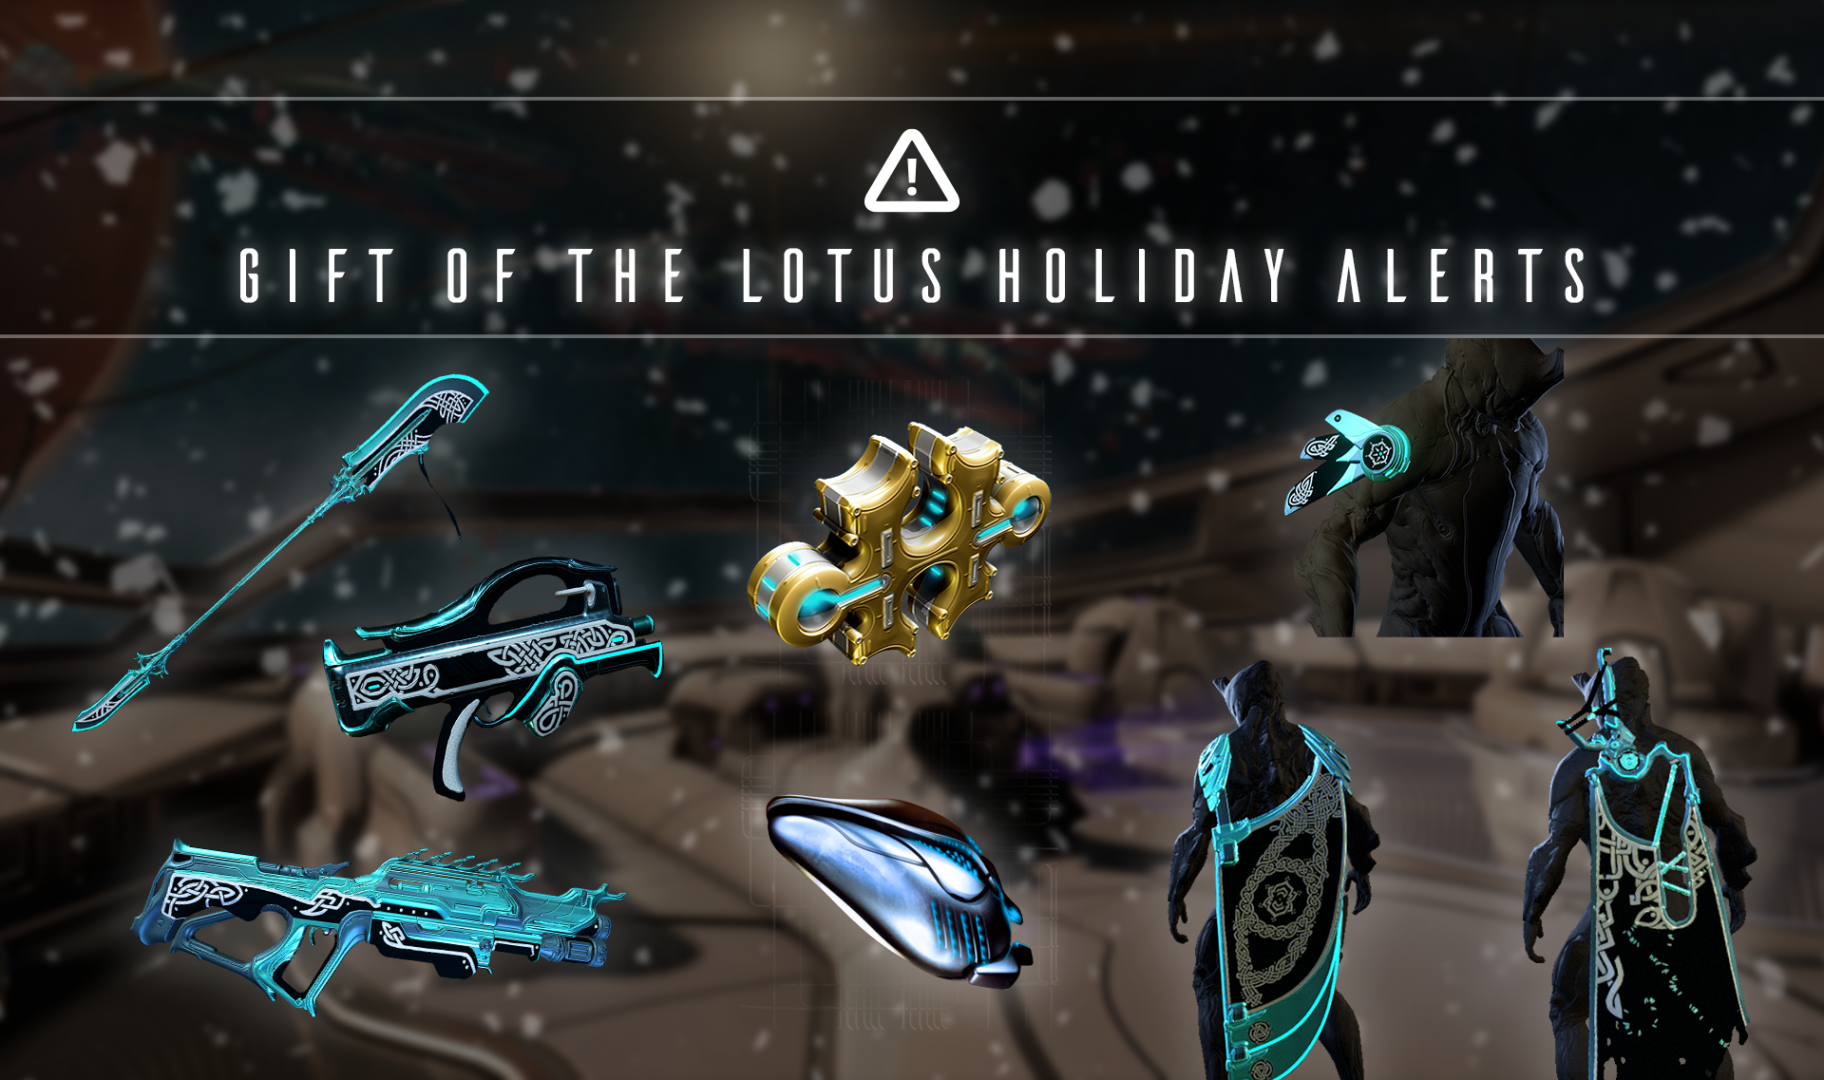 2020 Holiday Alerts_v2.png